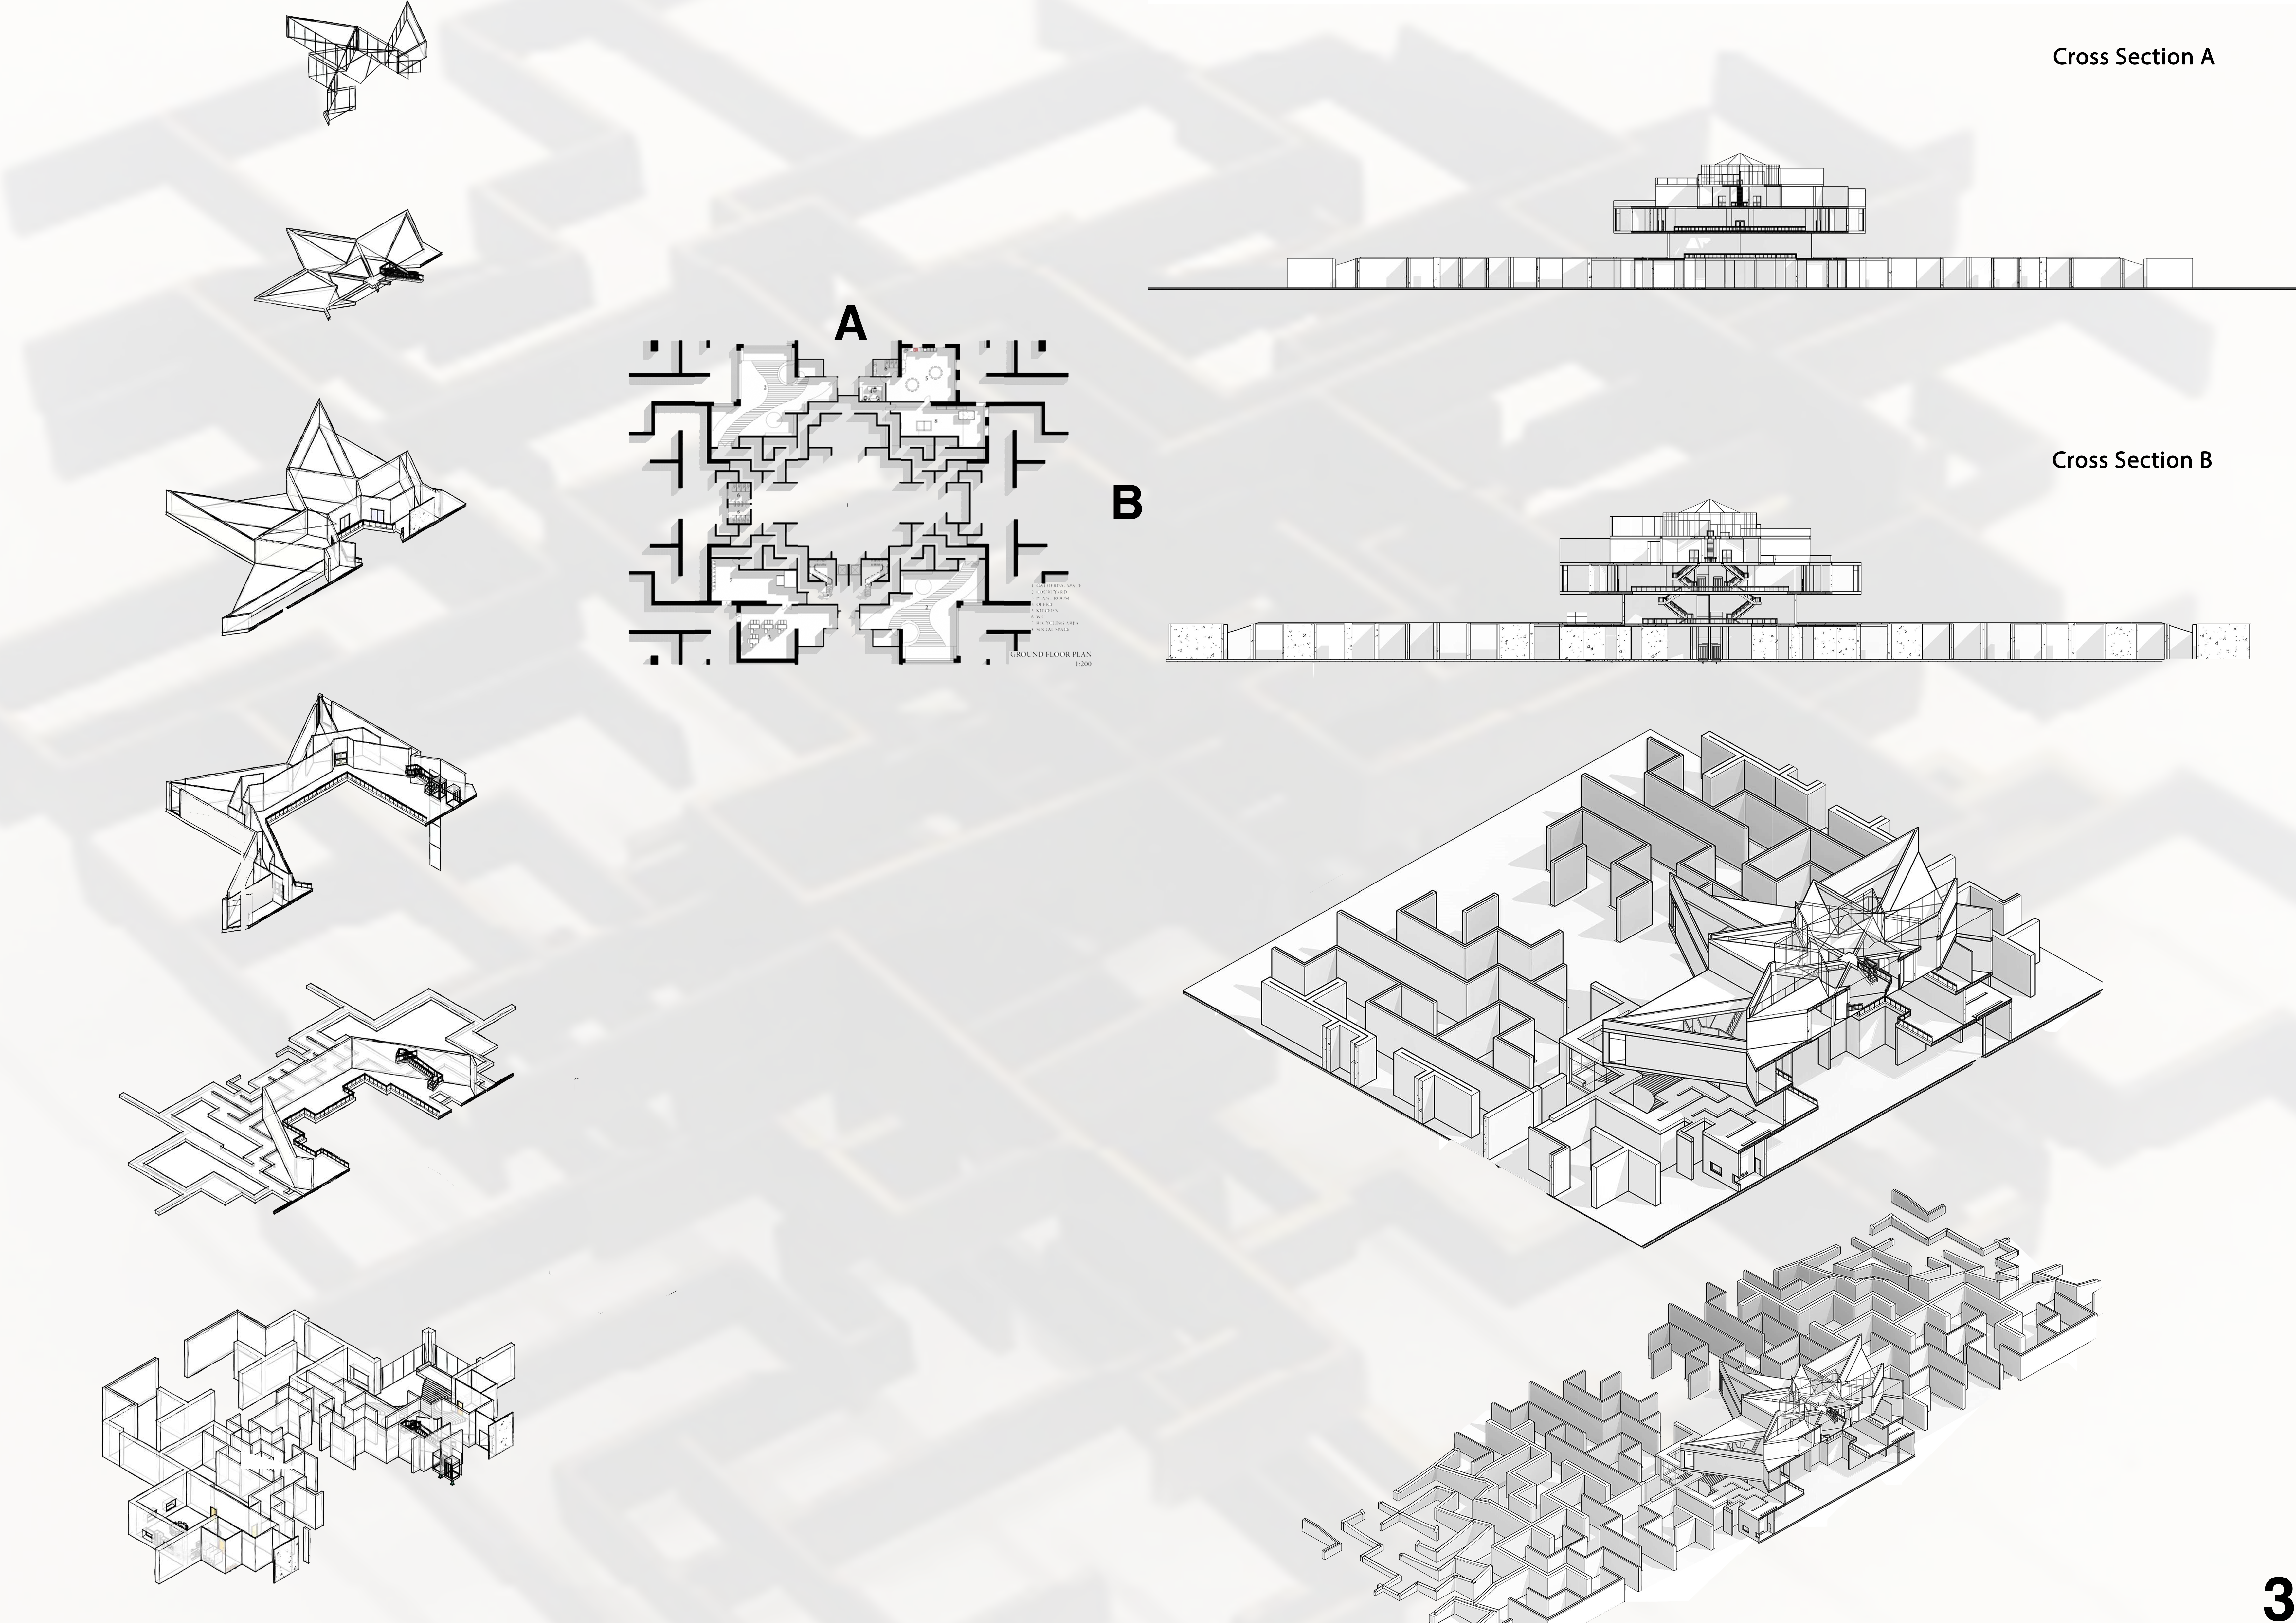 Cross-sections and Axonometric Image